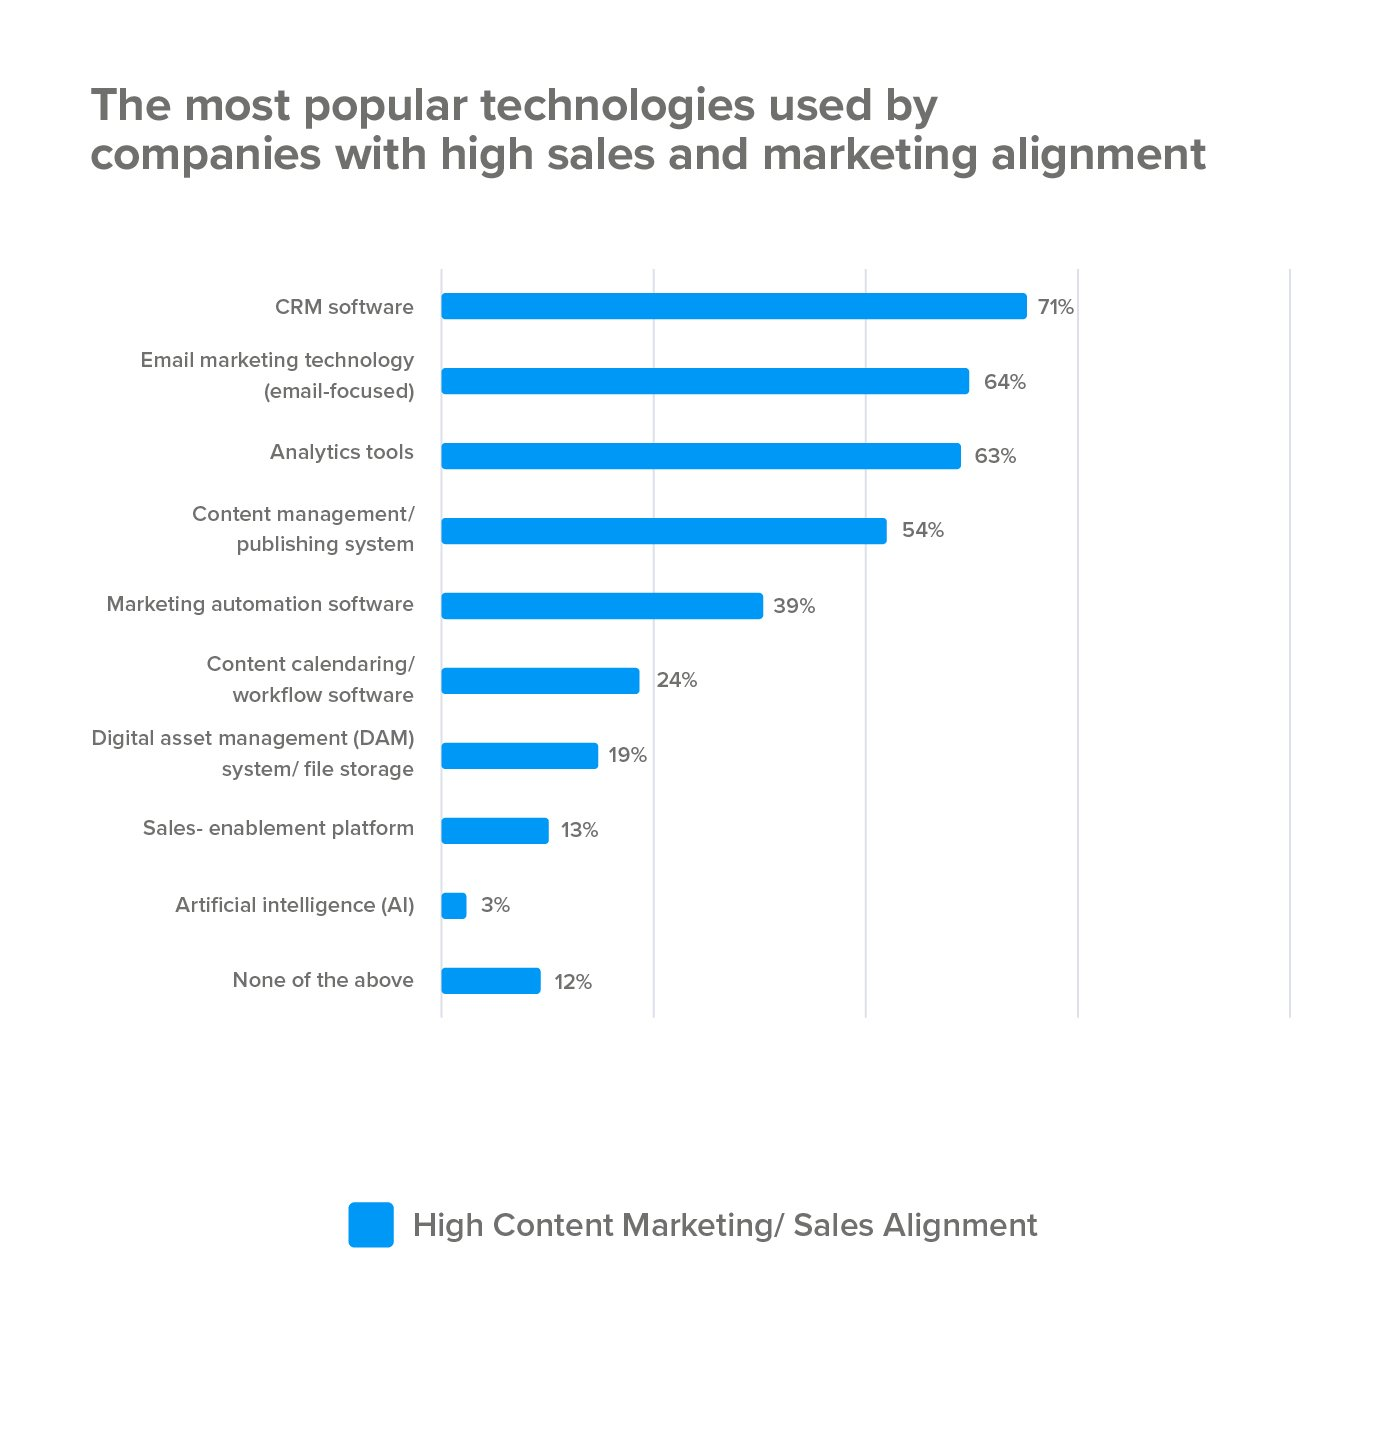 Most popular technologies used by high sales marketing alignment teams